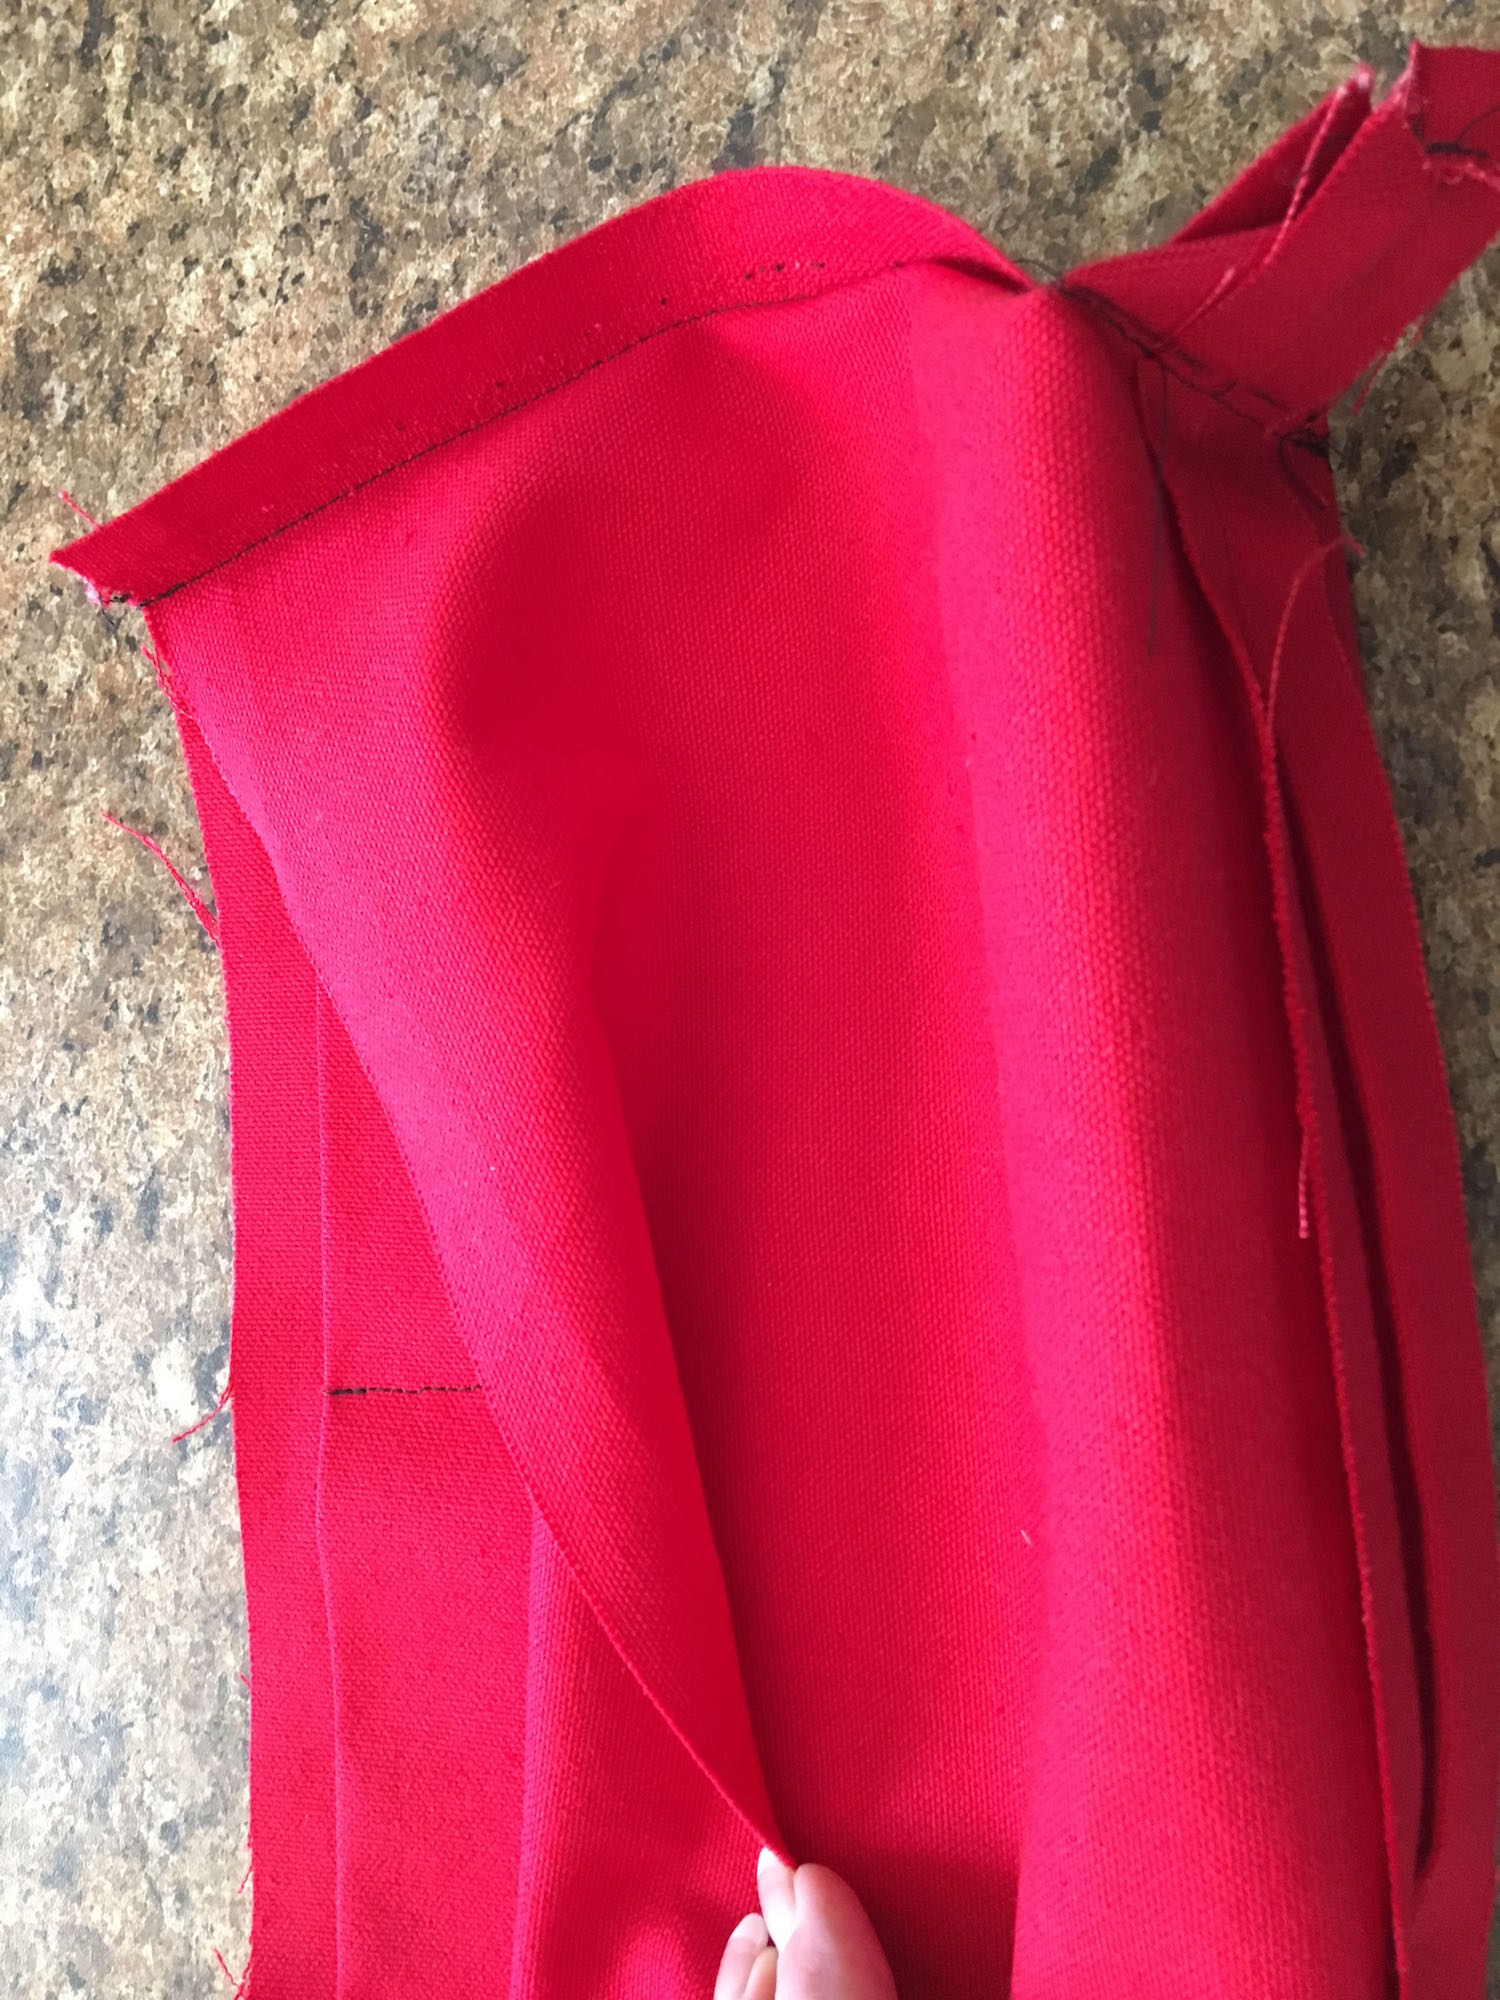 """step 15 - Center the pocket inside the lining and sew the pocket to the lining with a 1/8"""" seam. Pin the right side of the top lining edge to the right top outer edge of the bag. Sew together."""